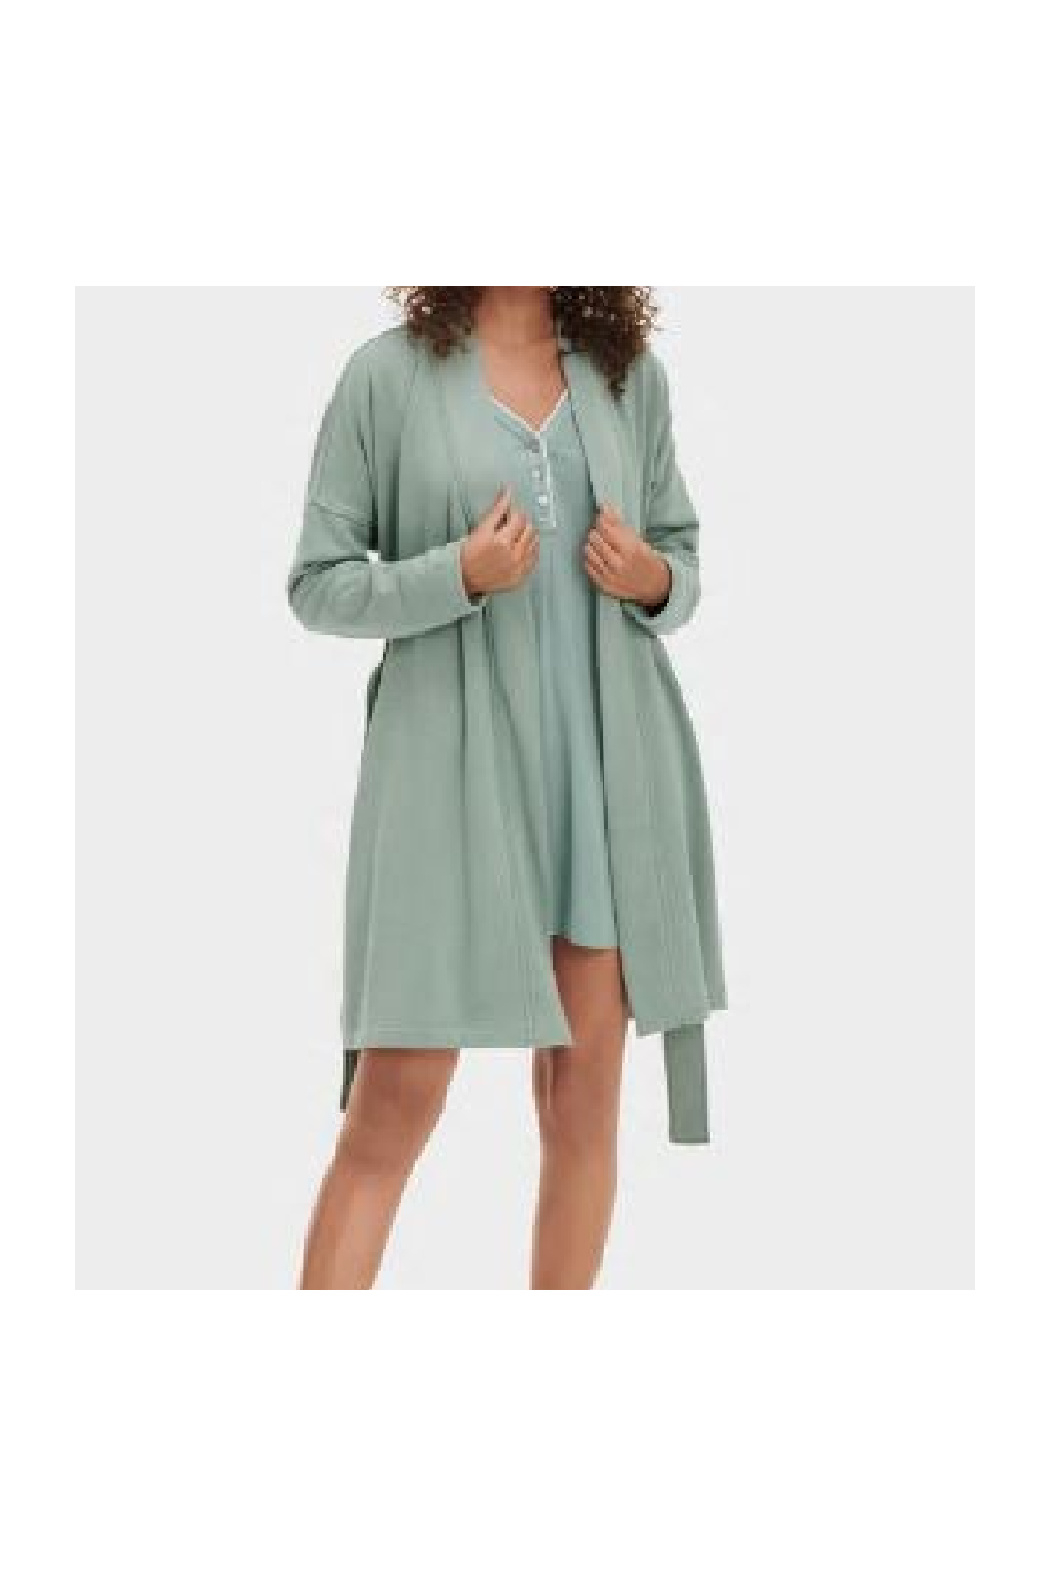 Ugg BRAELYN II ROBE - Front Cropped Image